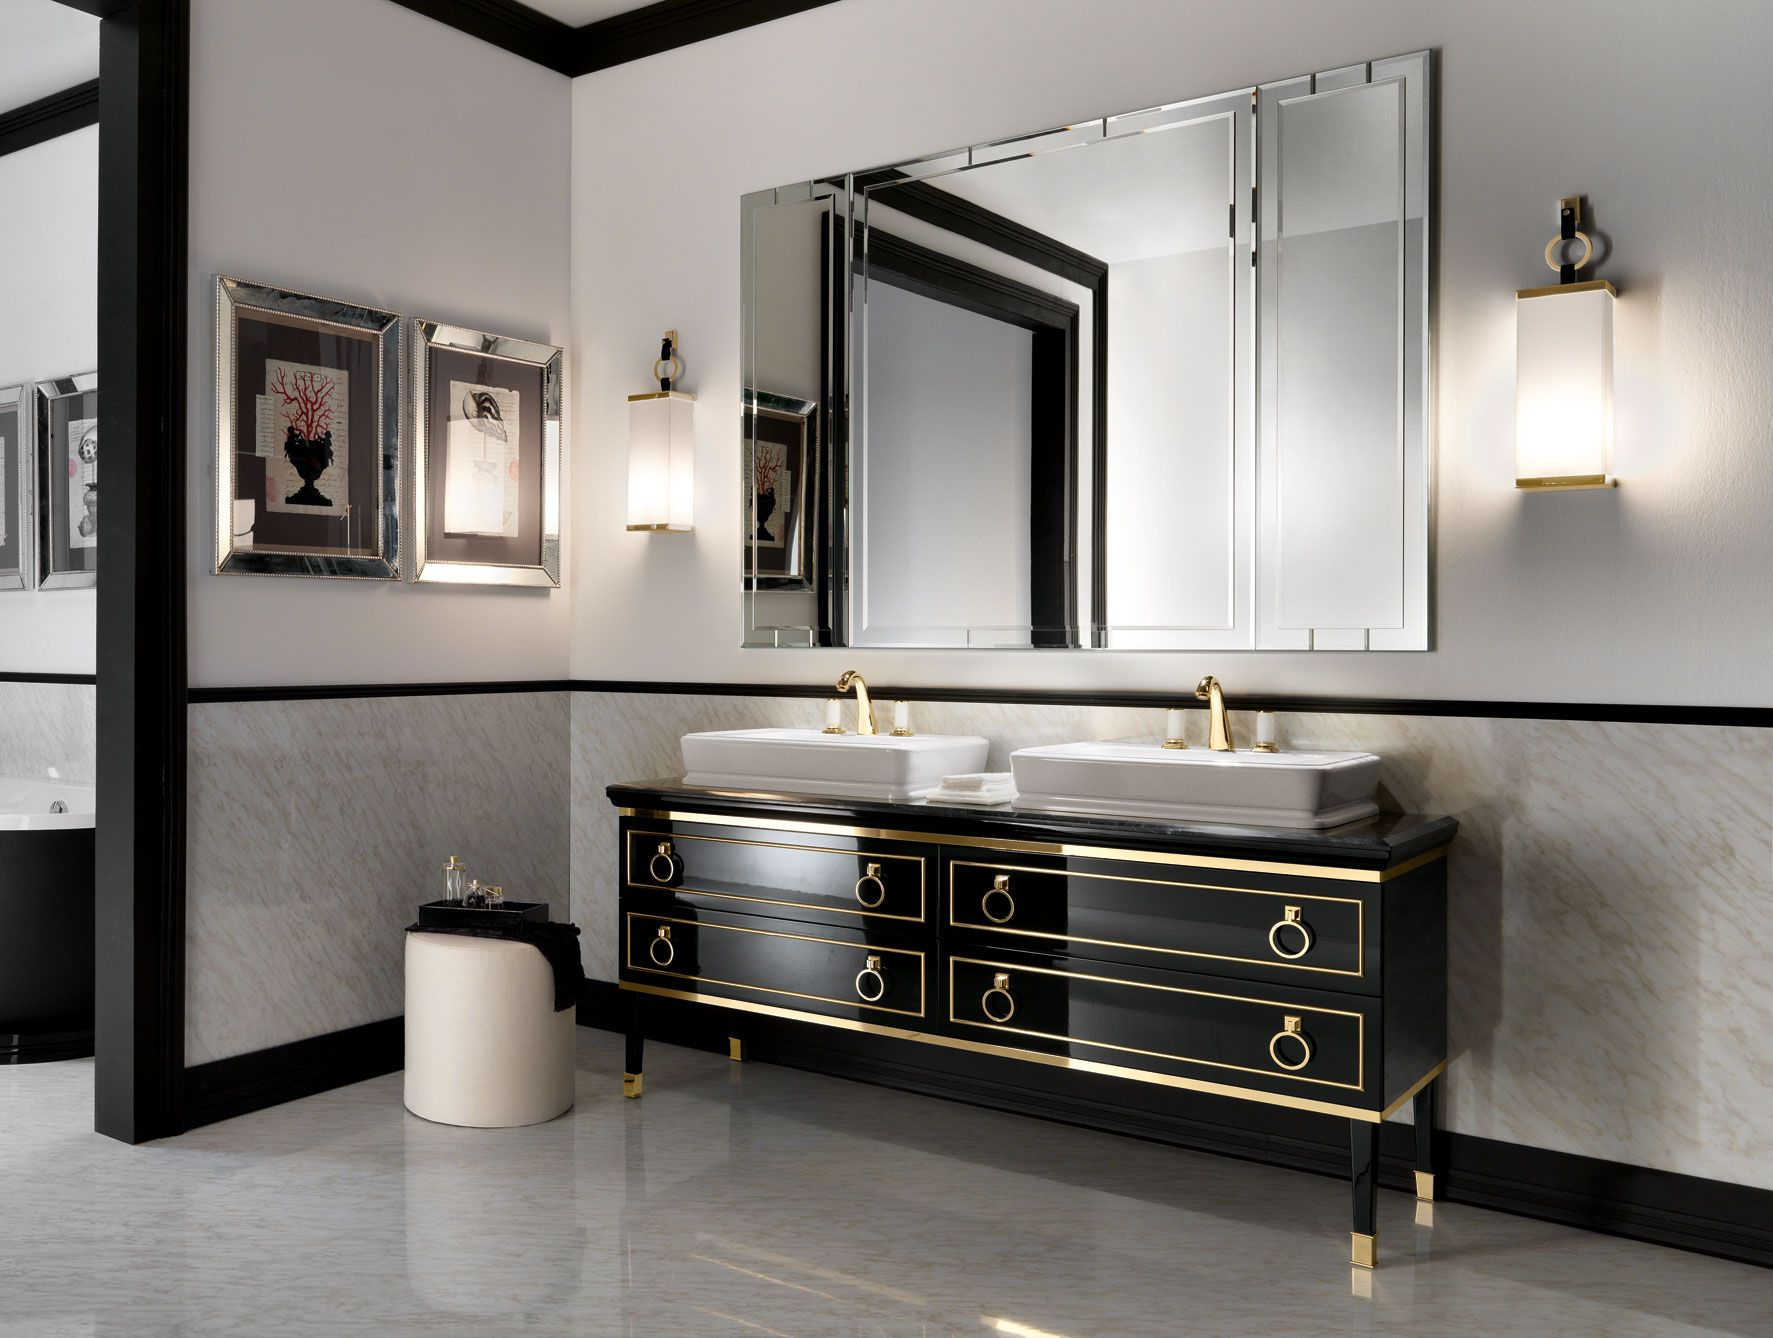 lutetia luxury art deco bathroom vanities nella vetrina - Luxurious Bathroom Vanity